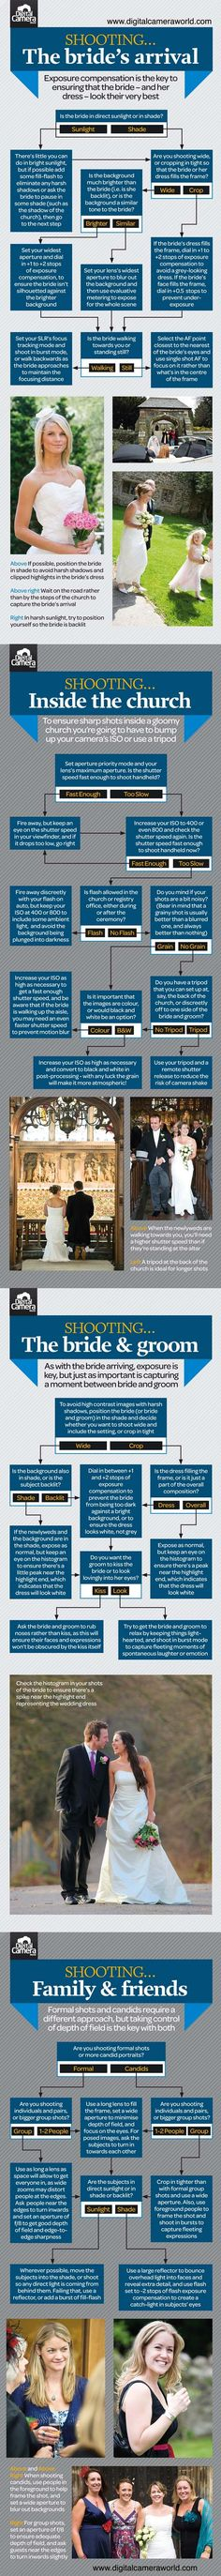 Free wedding photography cheat sheet: drag and drop to download